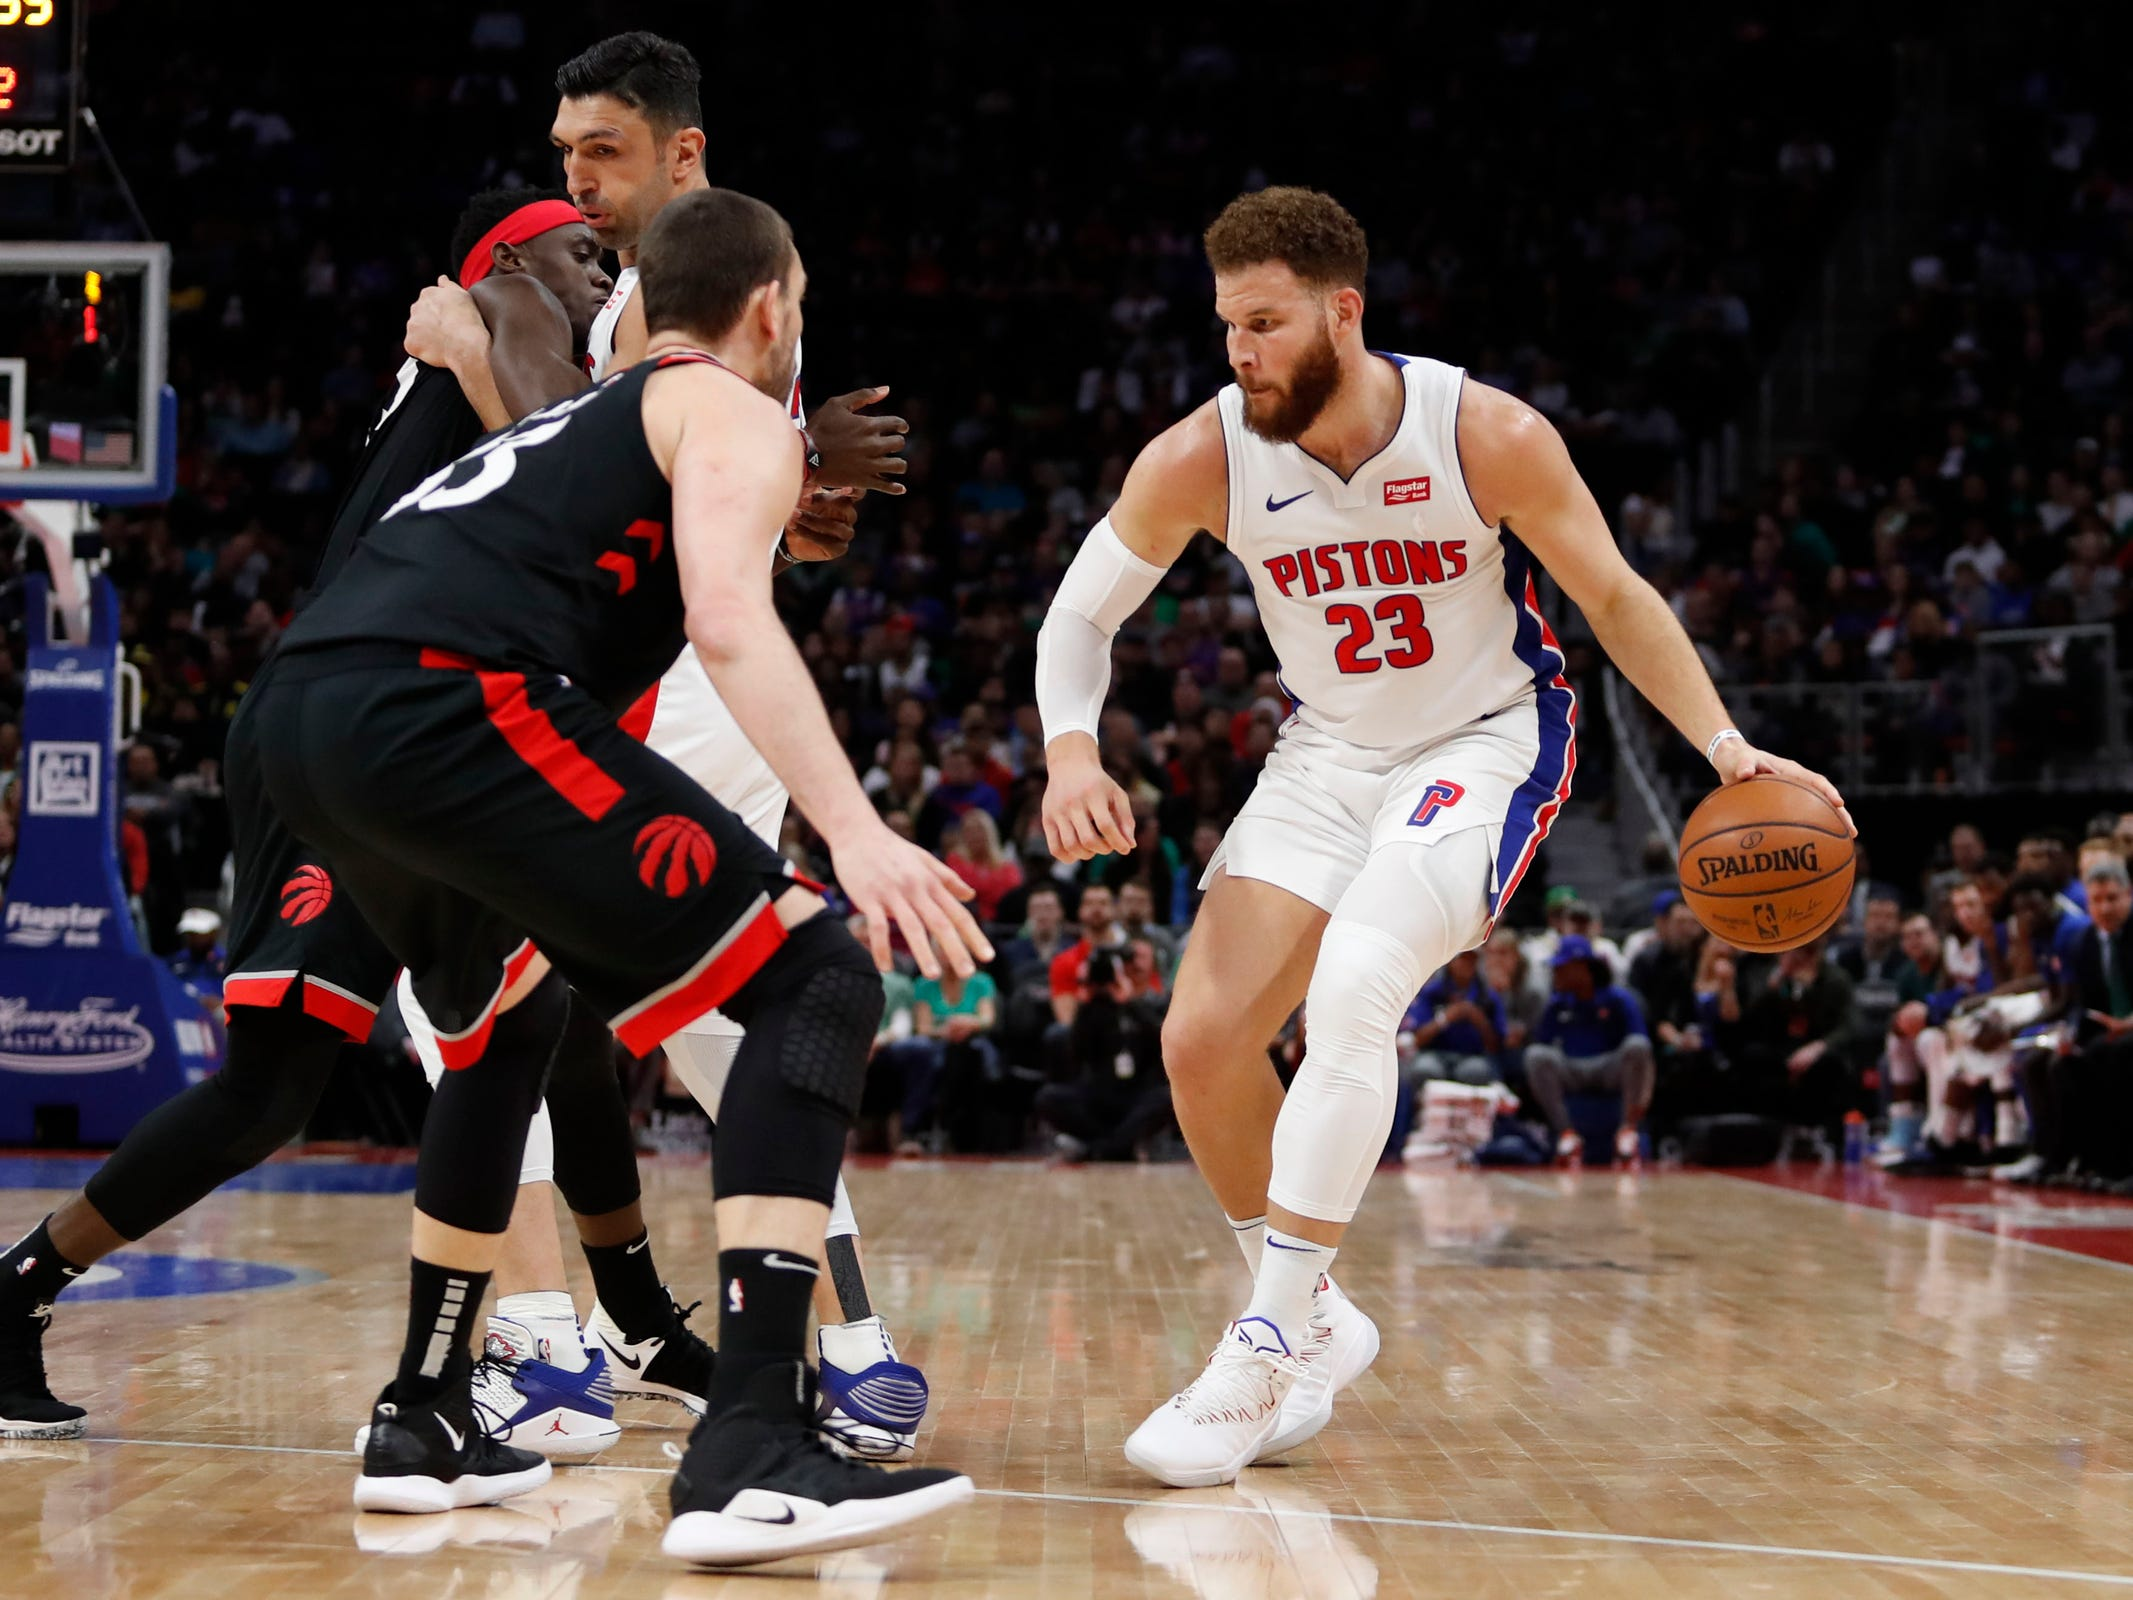 Detroit Pistons forward Blake Griffin dribbles against Toronto Raptors center Marc Gasol during the first quarter at Little Caesars Arena, Sunday, March 17, 2019.